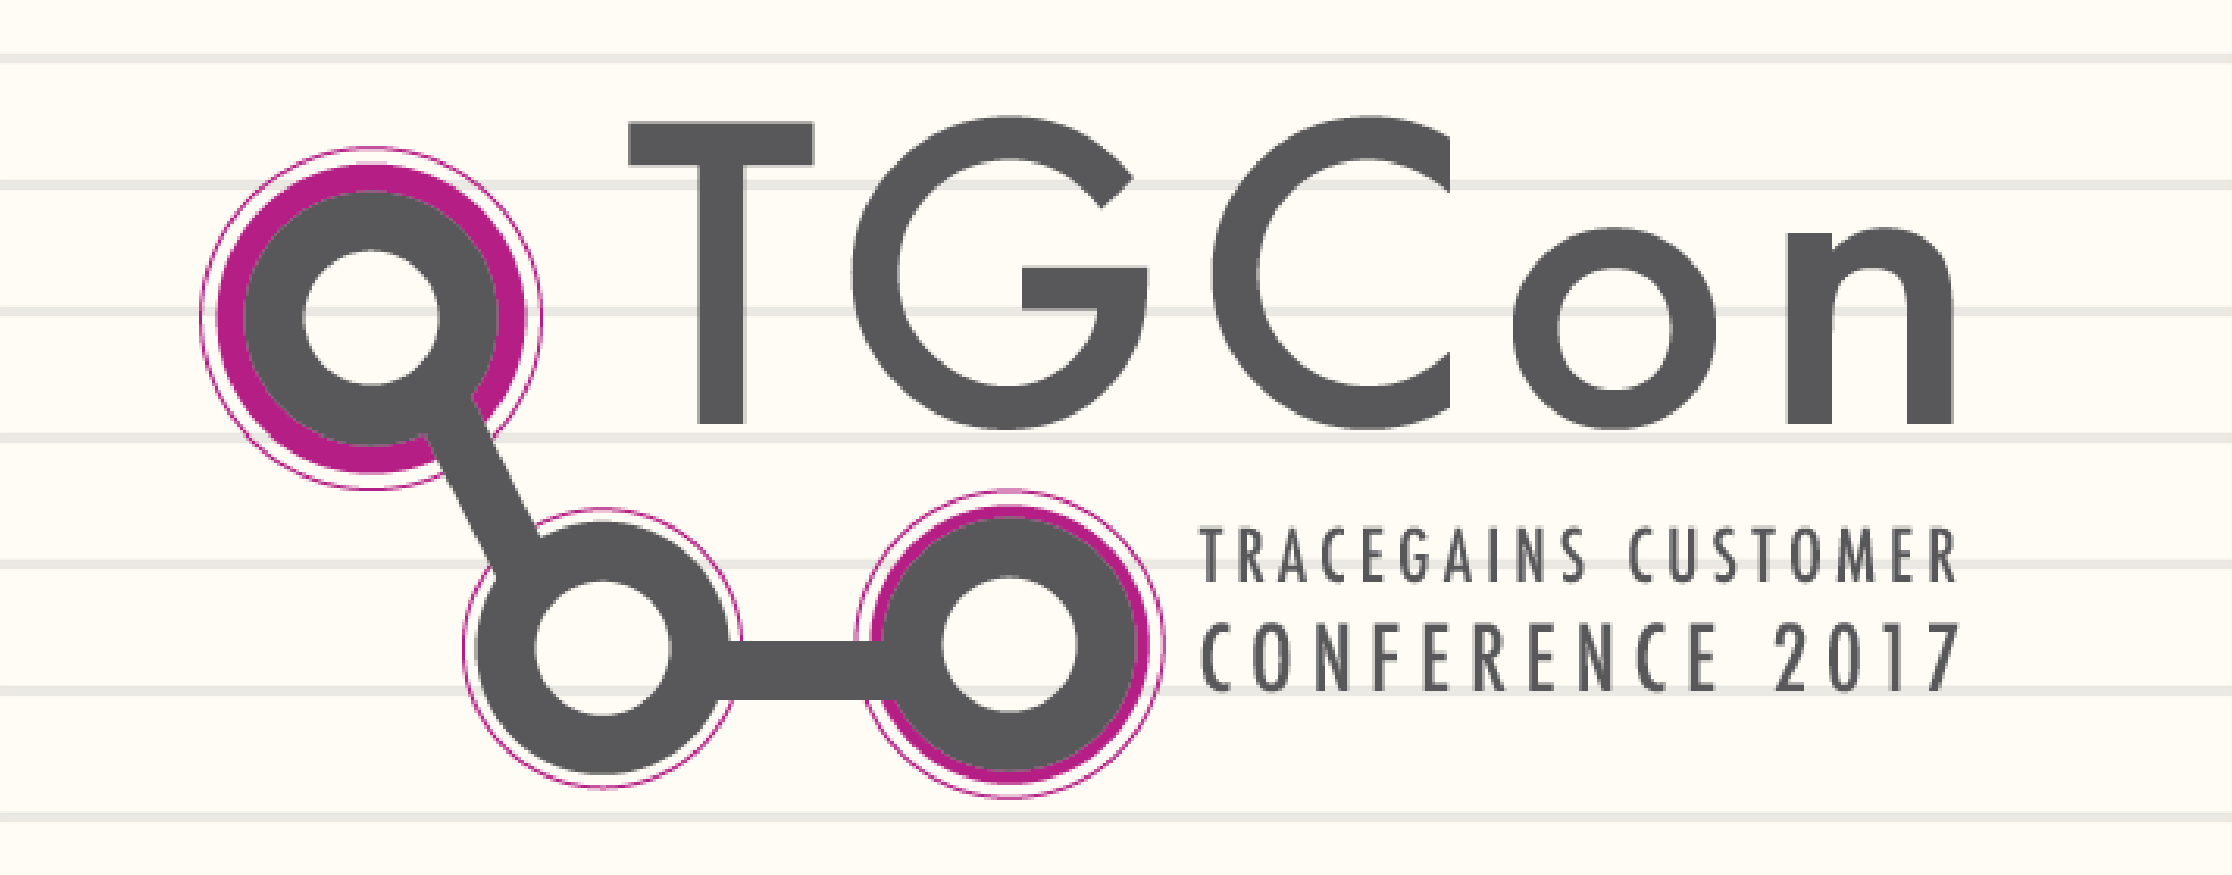 TGCon 2017: What You Need to Know